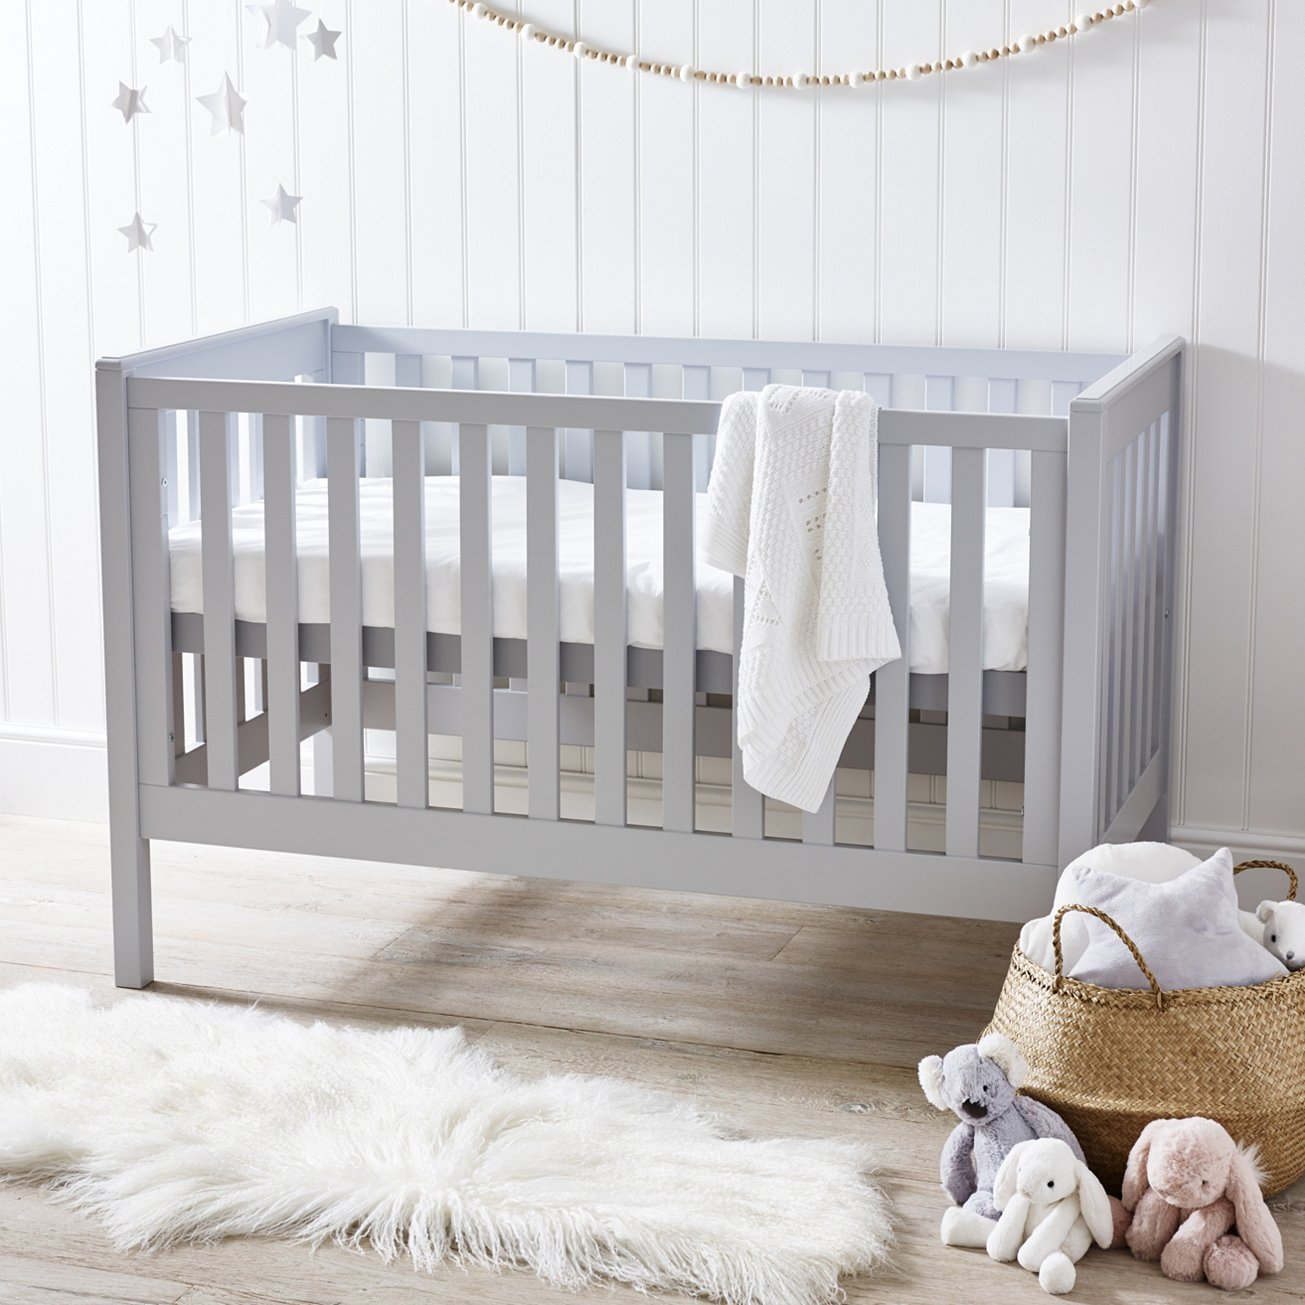 The rich birch bed is THE only early years bed that you will need. When you baby is small the cot will house them with ease. As they start to get older the cot can then be converted into a junior bed and the mattress can be lowered. This means that you do not need to fork out on another bed in their first few years. - £425.00